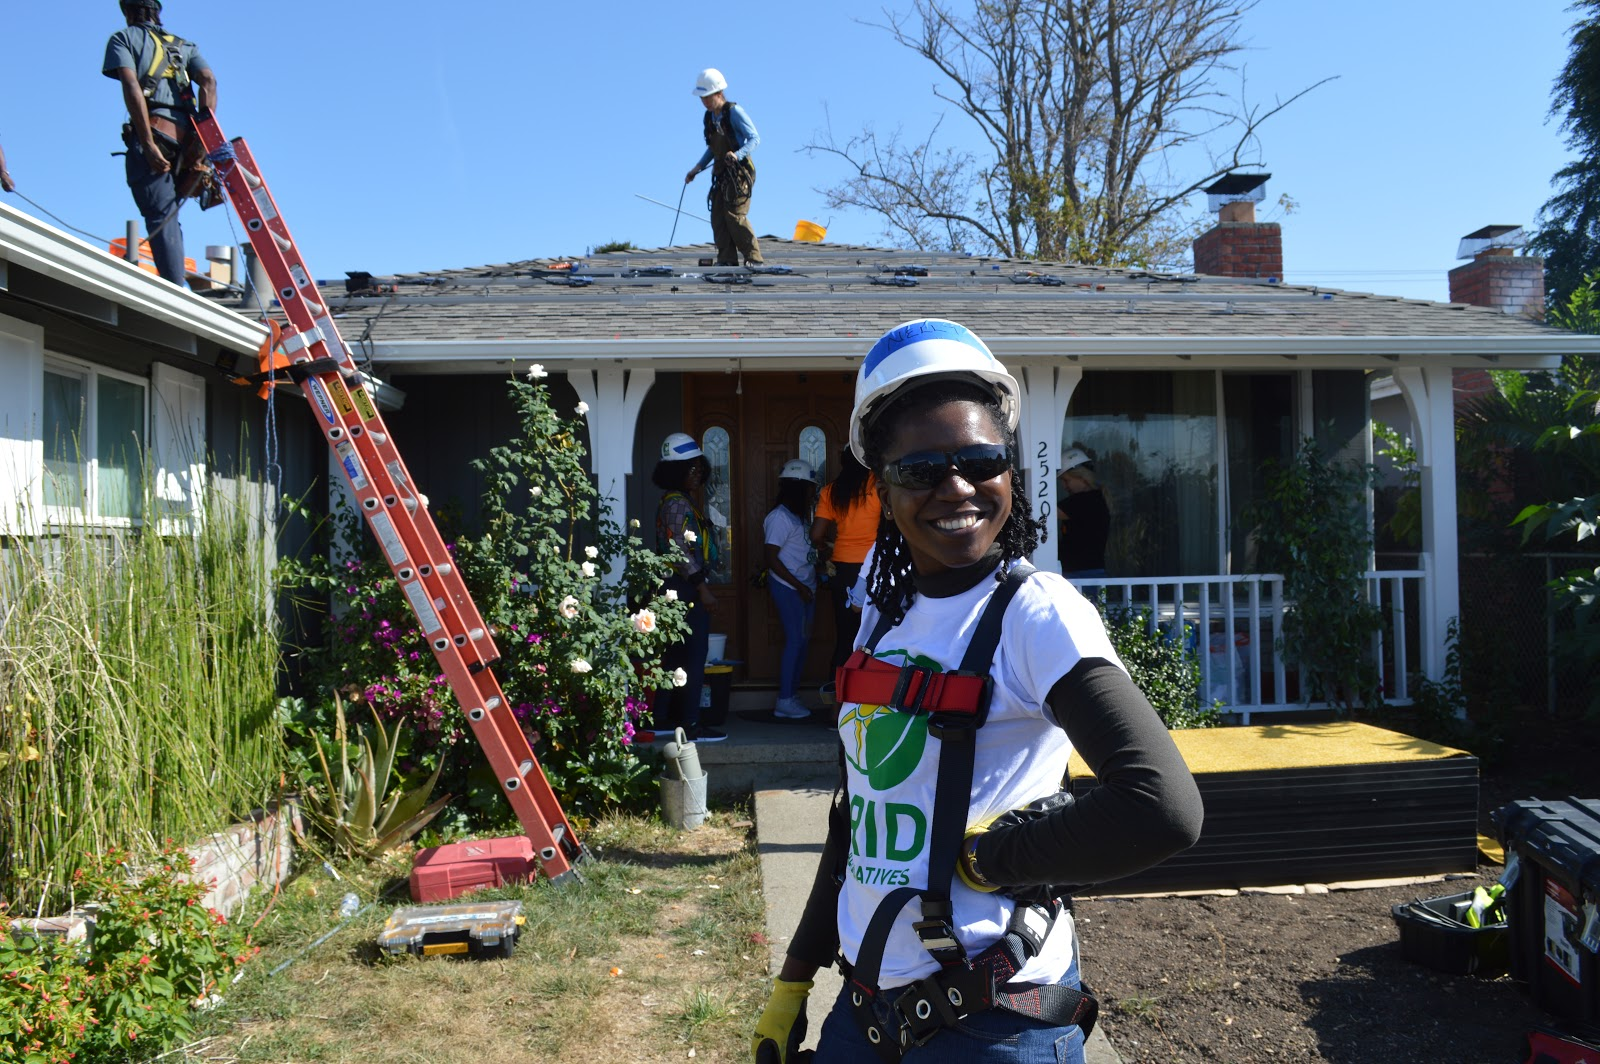 A GRID volunteer smiles at an install.